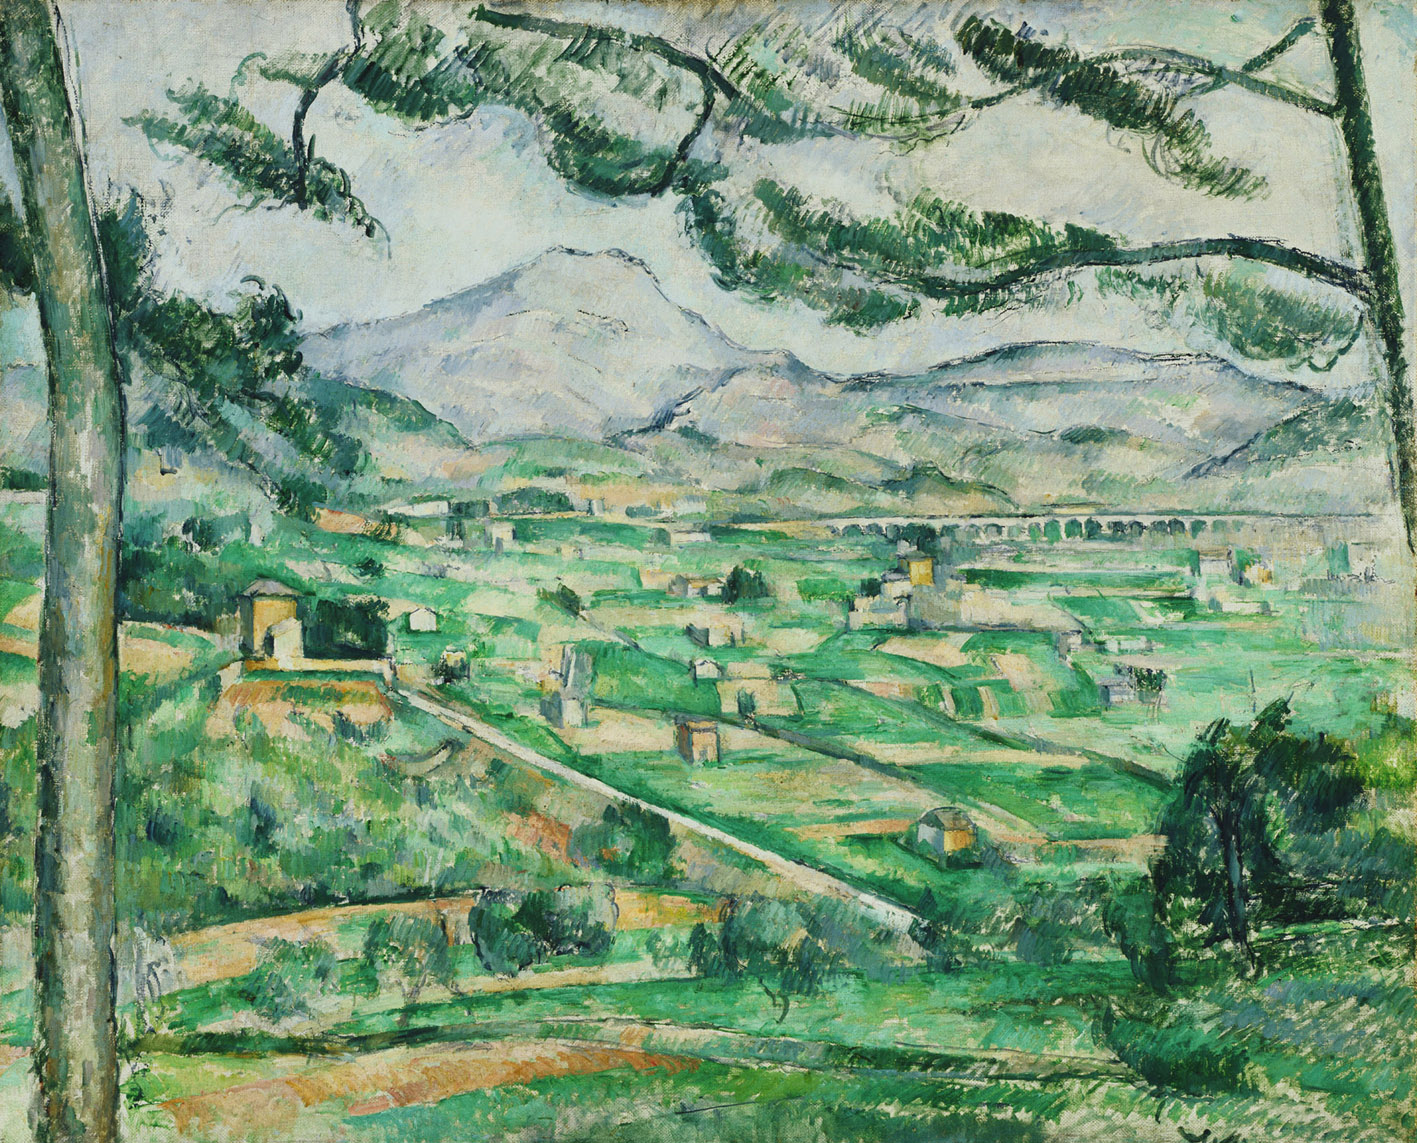 La montaña Saint Victoire, por Paul Cézanne, 1886-87, óleo sobre lienzo, 59,7 x 72,4 cm, The Phillips Collection, Washington, D.C., adquirido en 1925. Arriba, La habitación azul, por Pablo Picasso, 1901, óleo sobre lienzo, 50,5 x 61,6 cm, The Phillips Collection, Washington, D.C., adquirido en 1927.